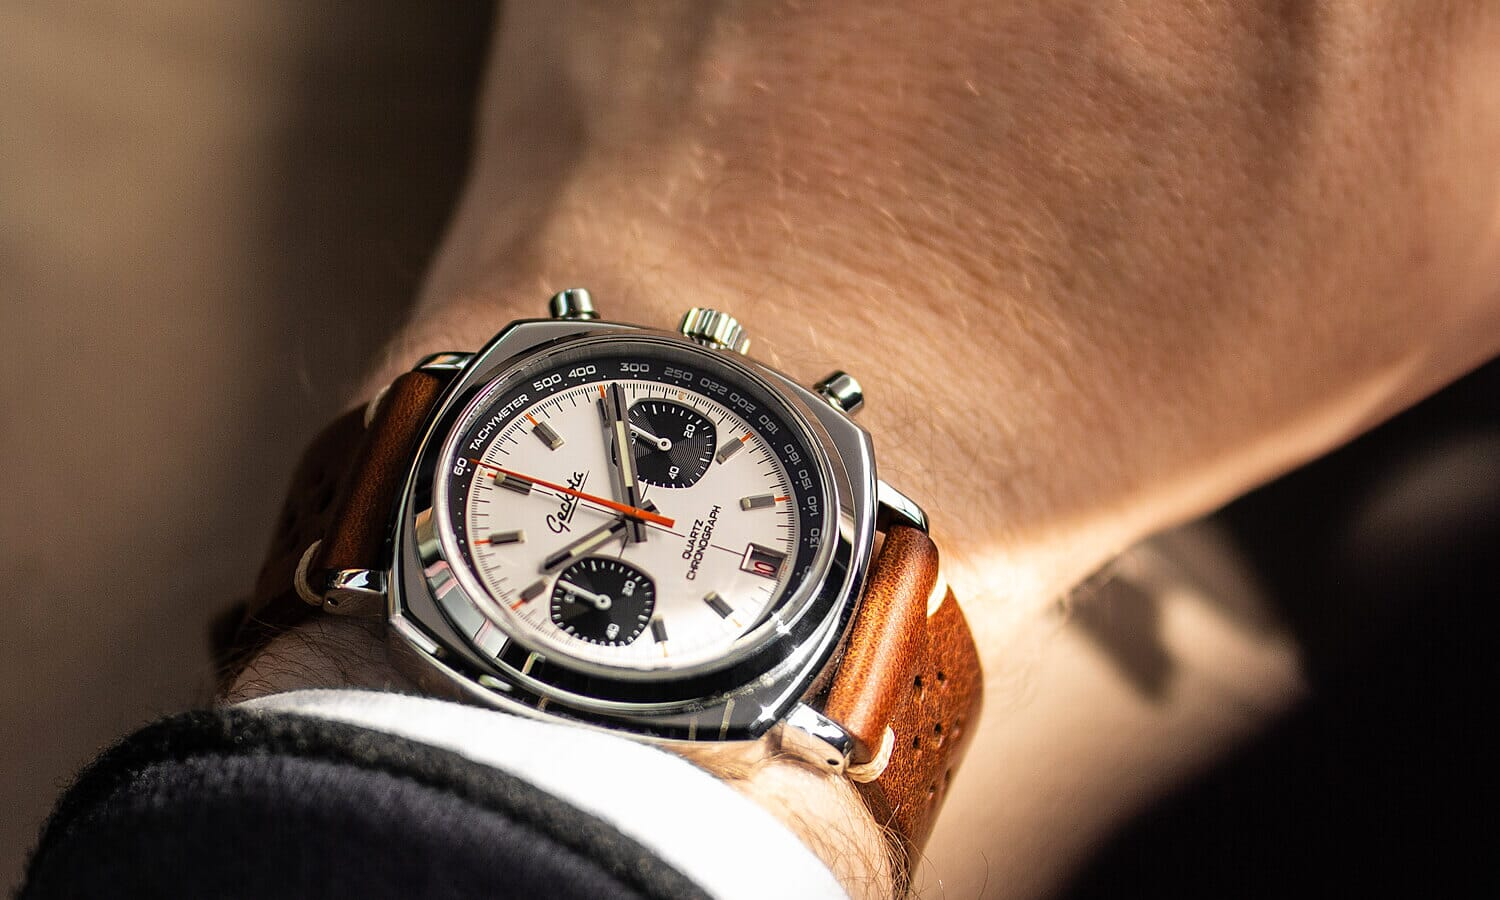 What Are The Most Popular Men's Watches?